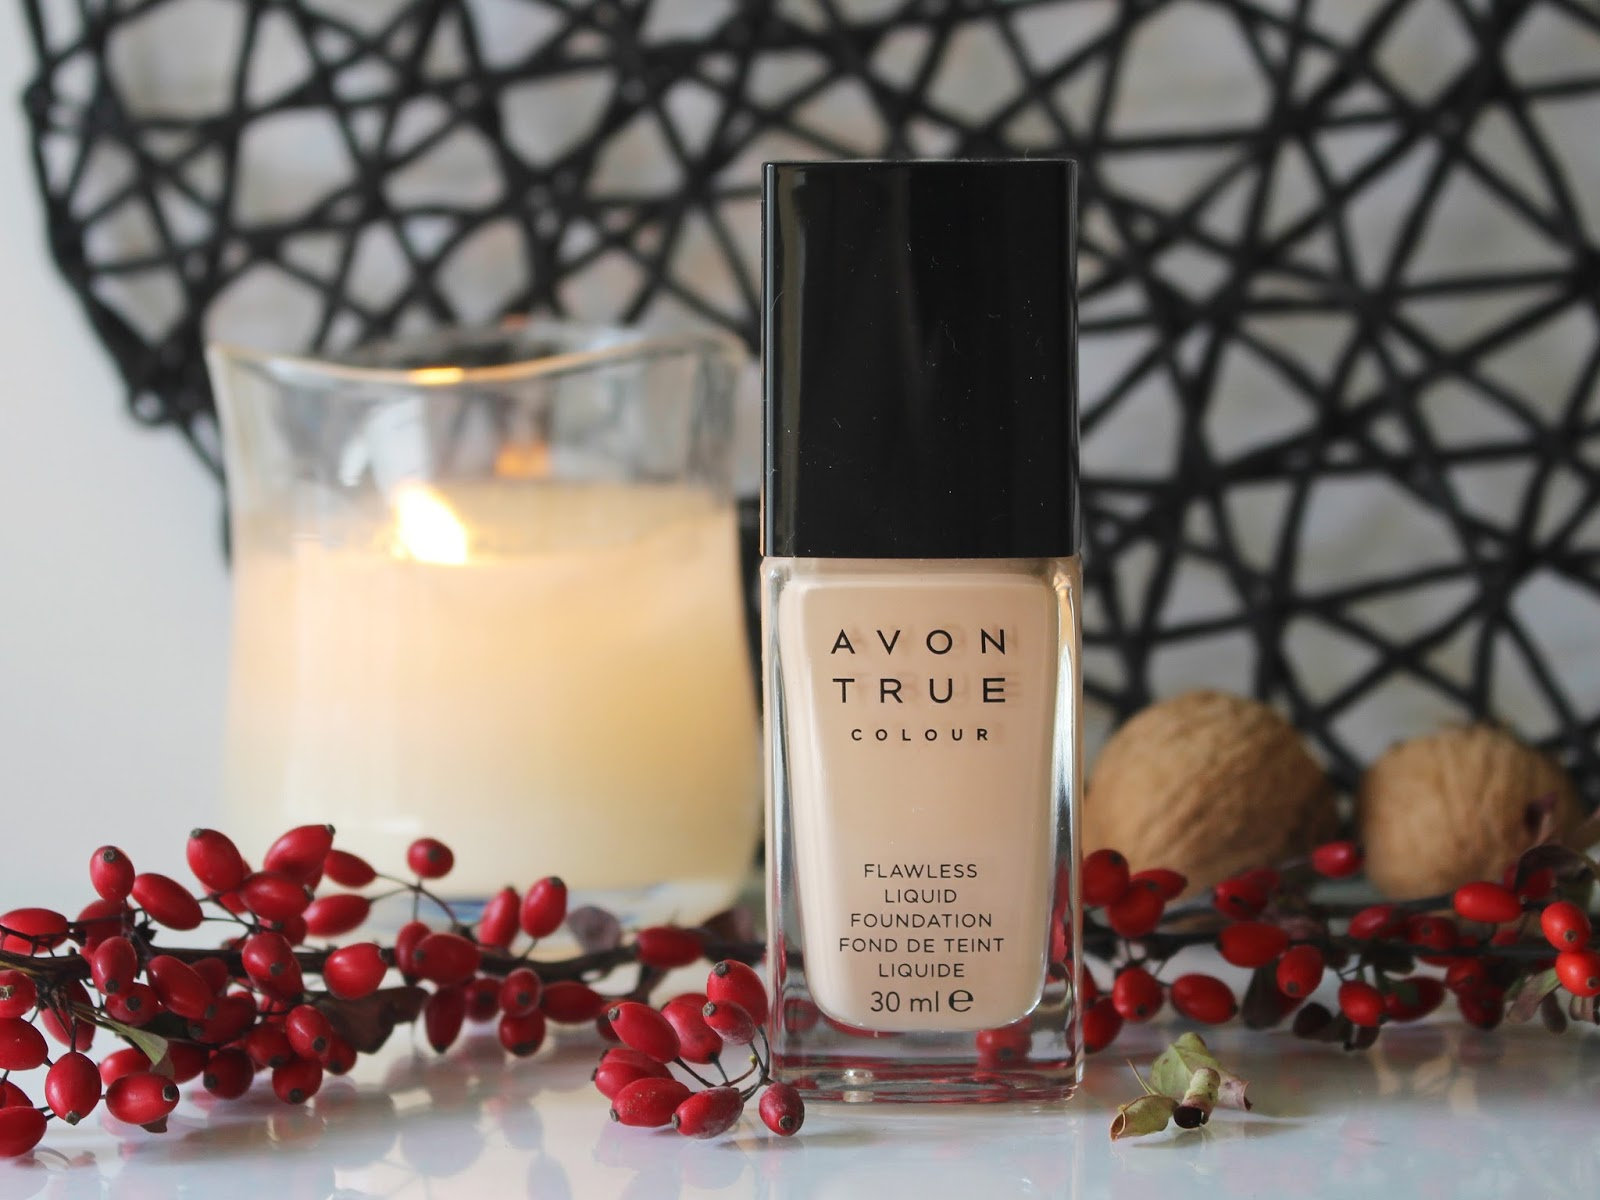 Avon True Flawless